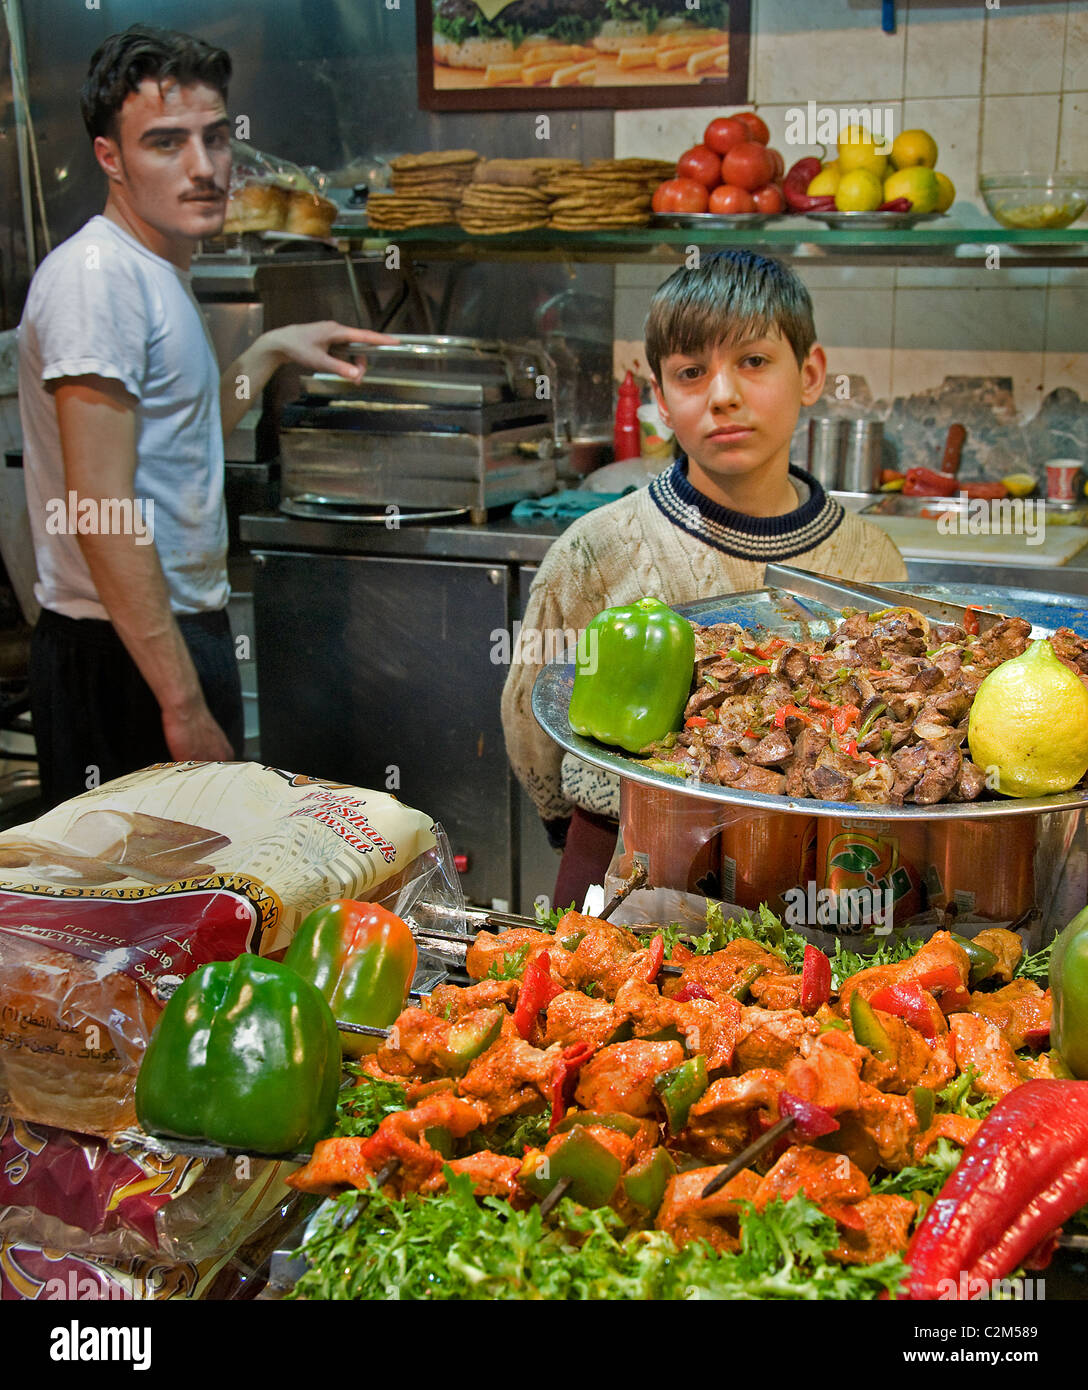 Aleppo Food Stock Photos & Aleppo Food Stock Images - Alamy